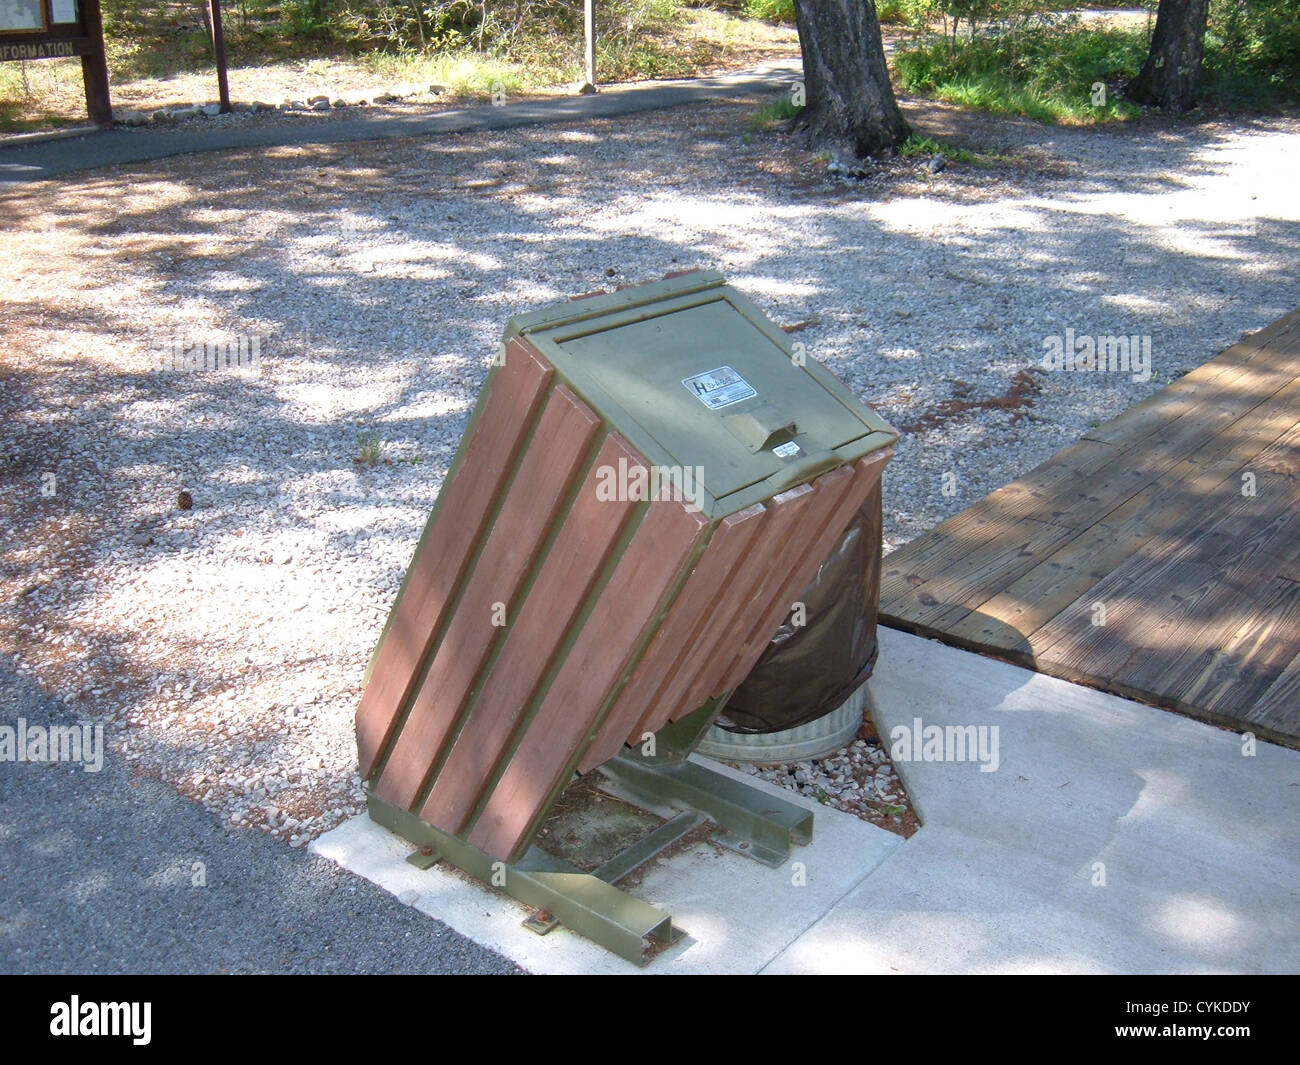 Bear-proof garbage can, located at the Train Depot in Cloudcroft, New Mexico. The container is bolted to the pavement - Stock Image